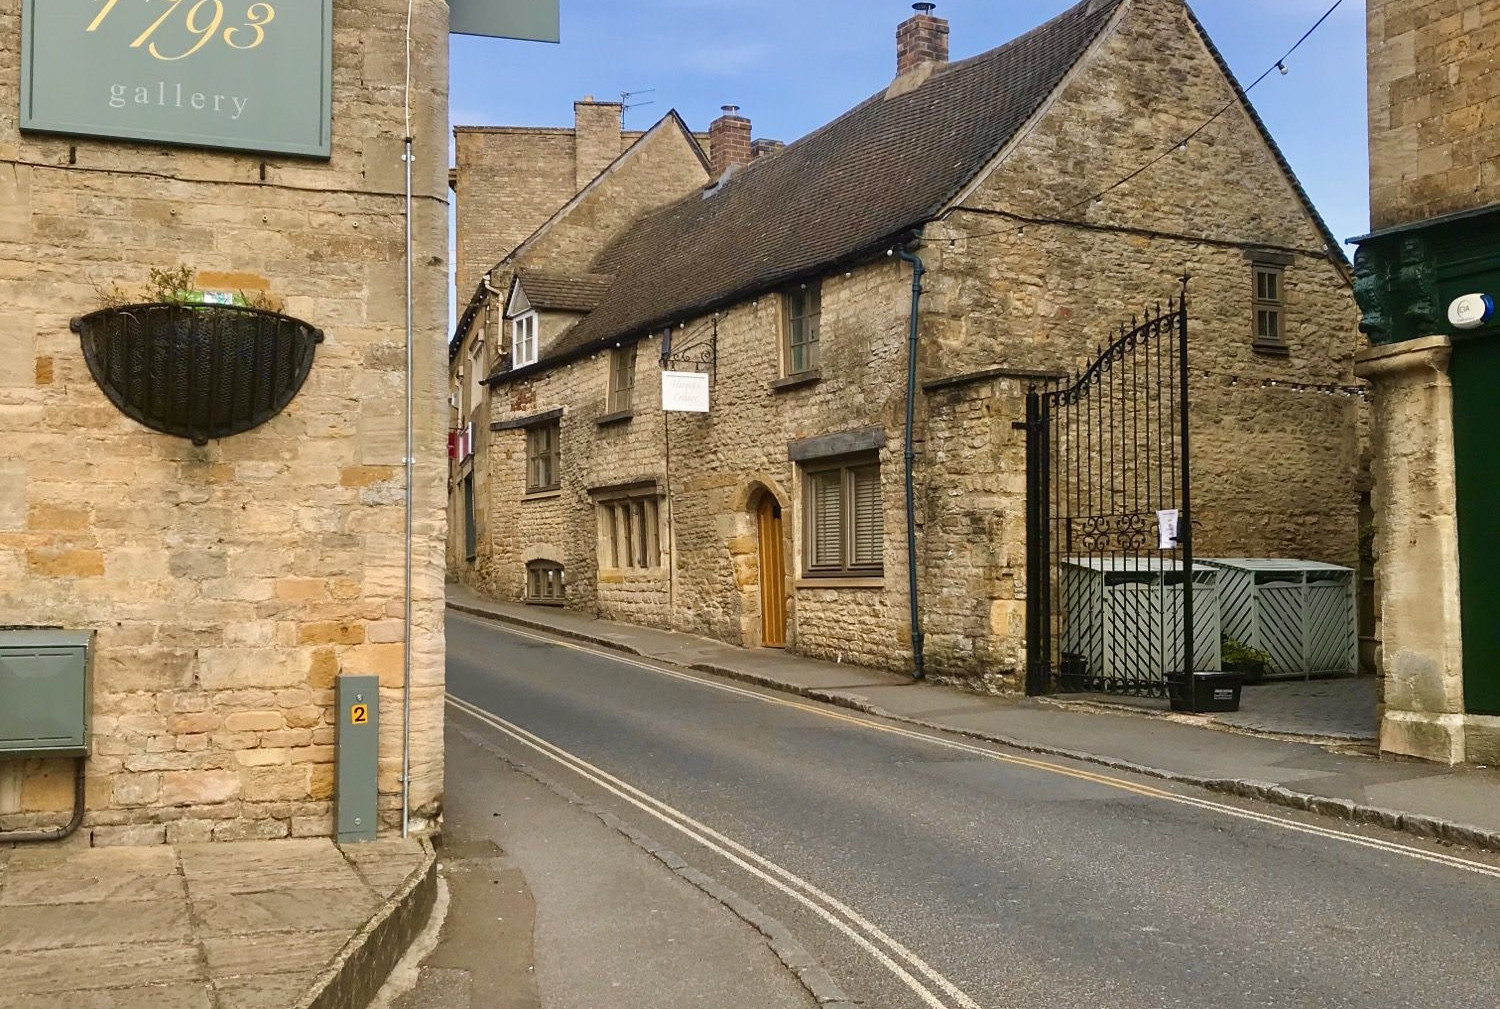 Digbeth Street Stow on the Wold